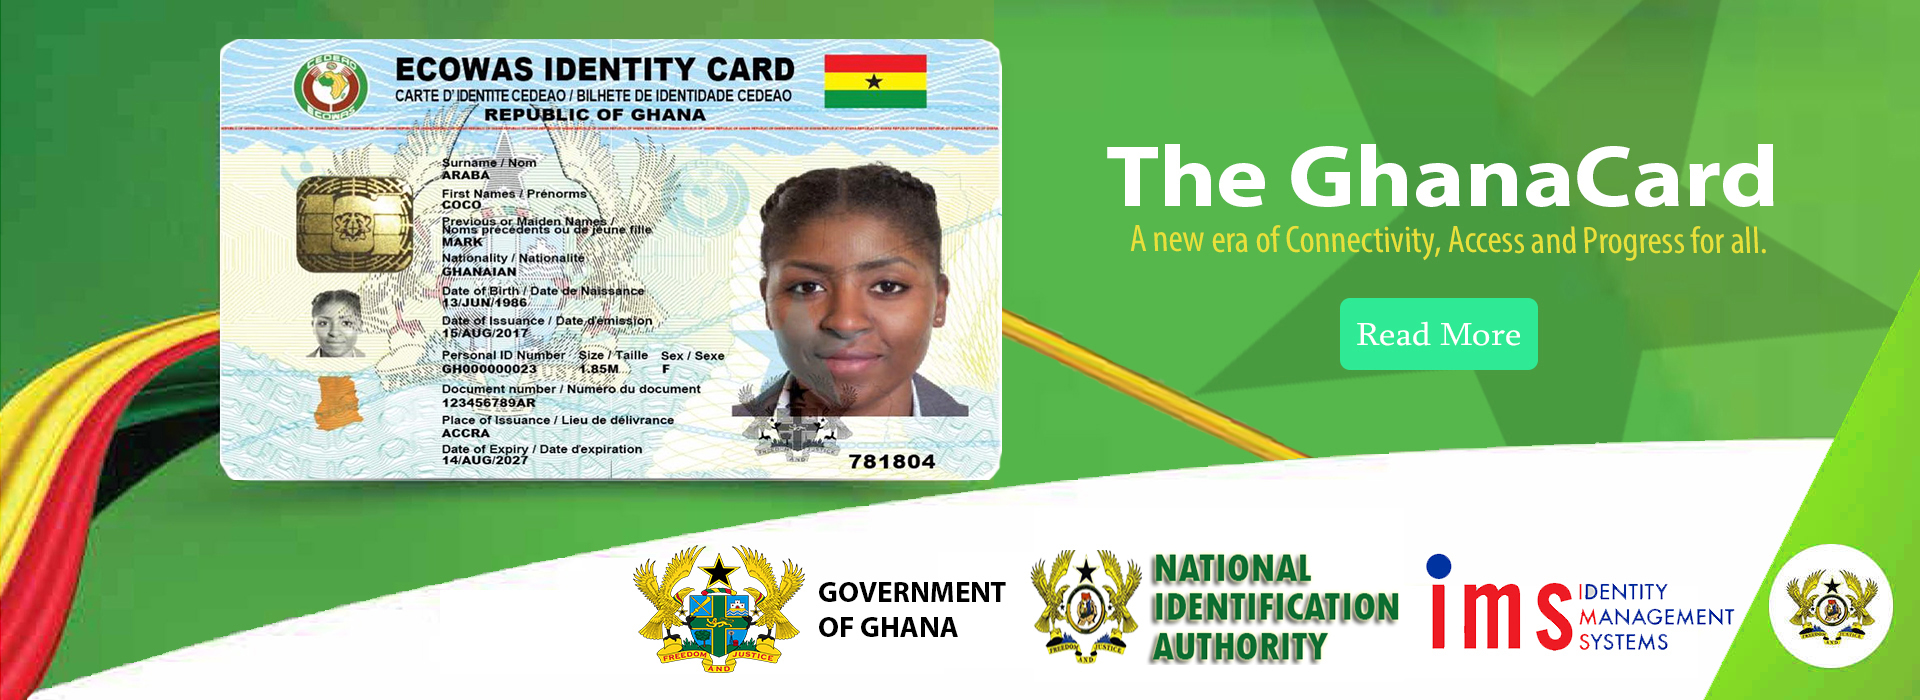 How To Link Your Ghana Card To Your Health Insurance